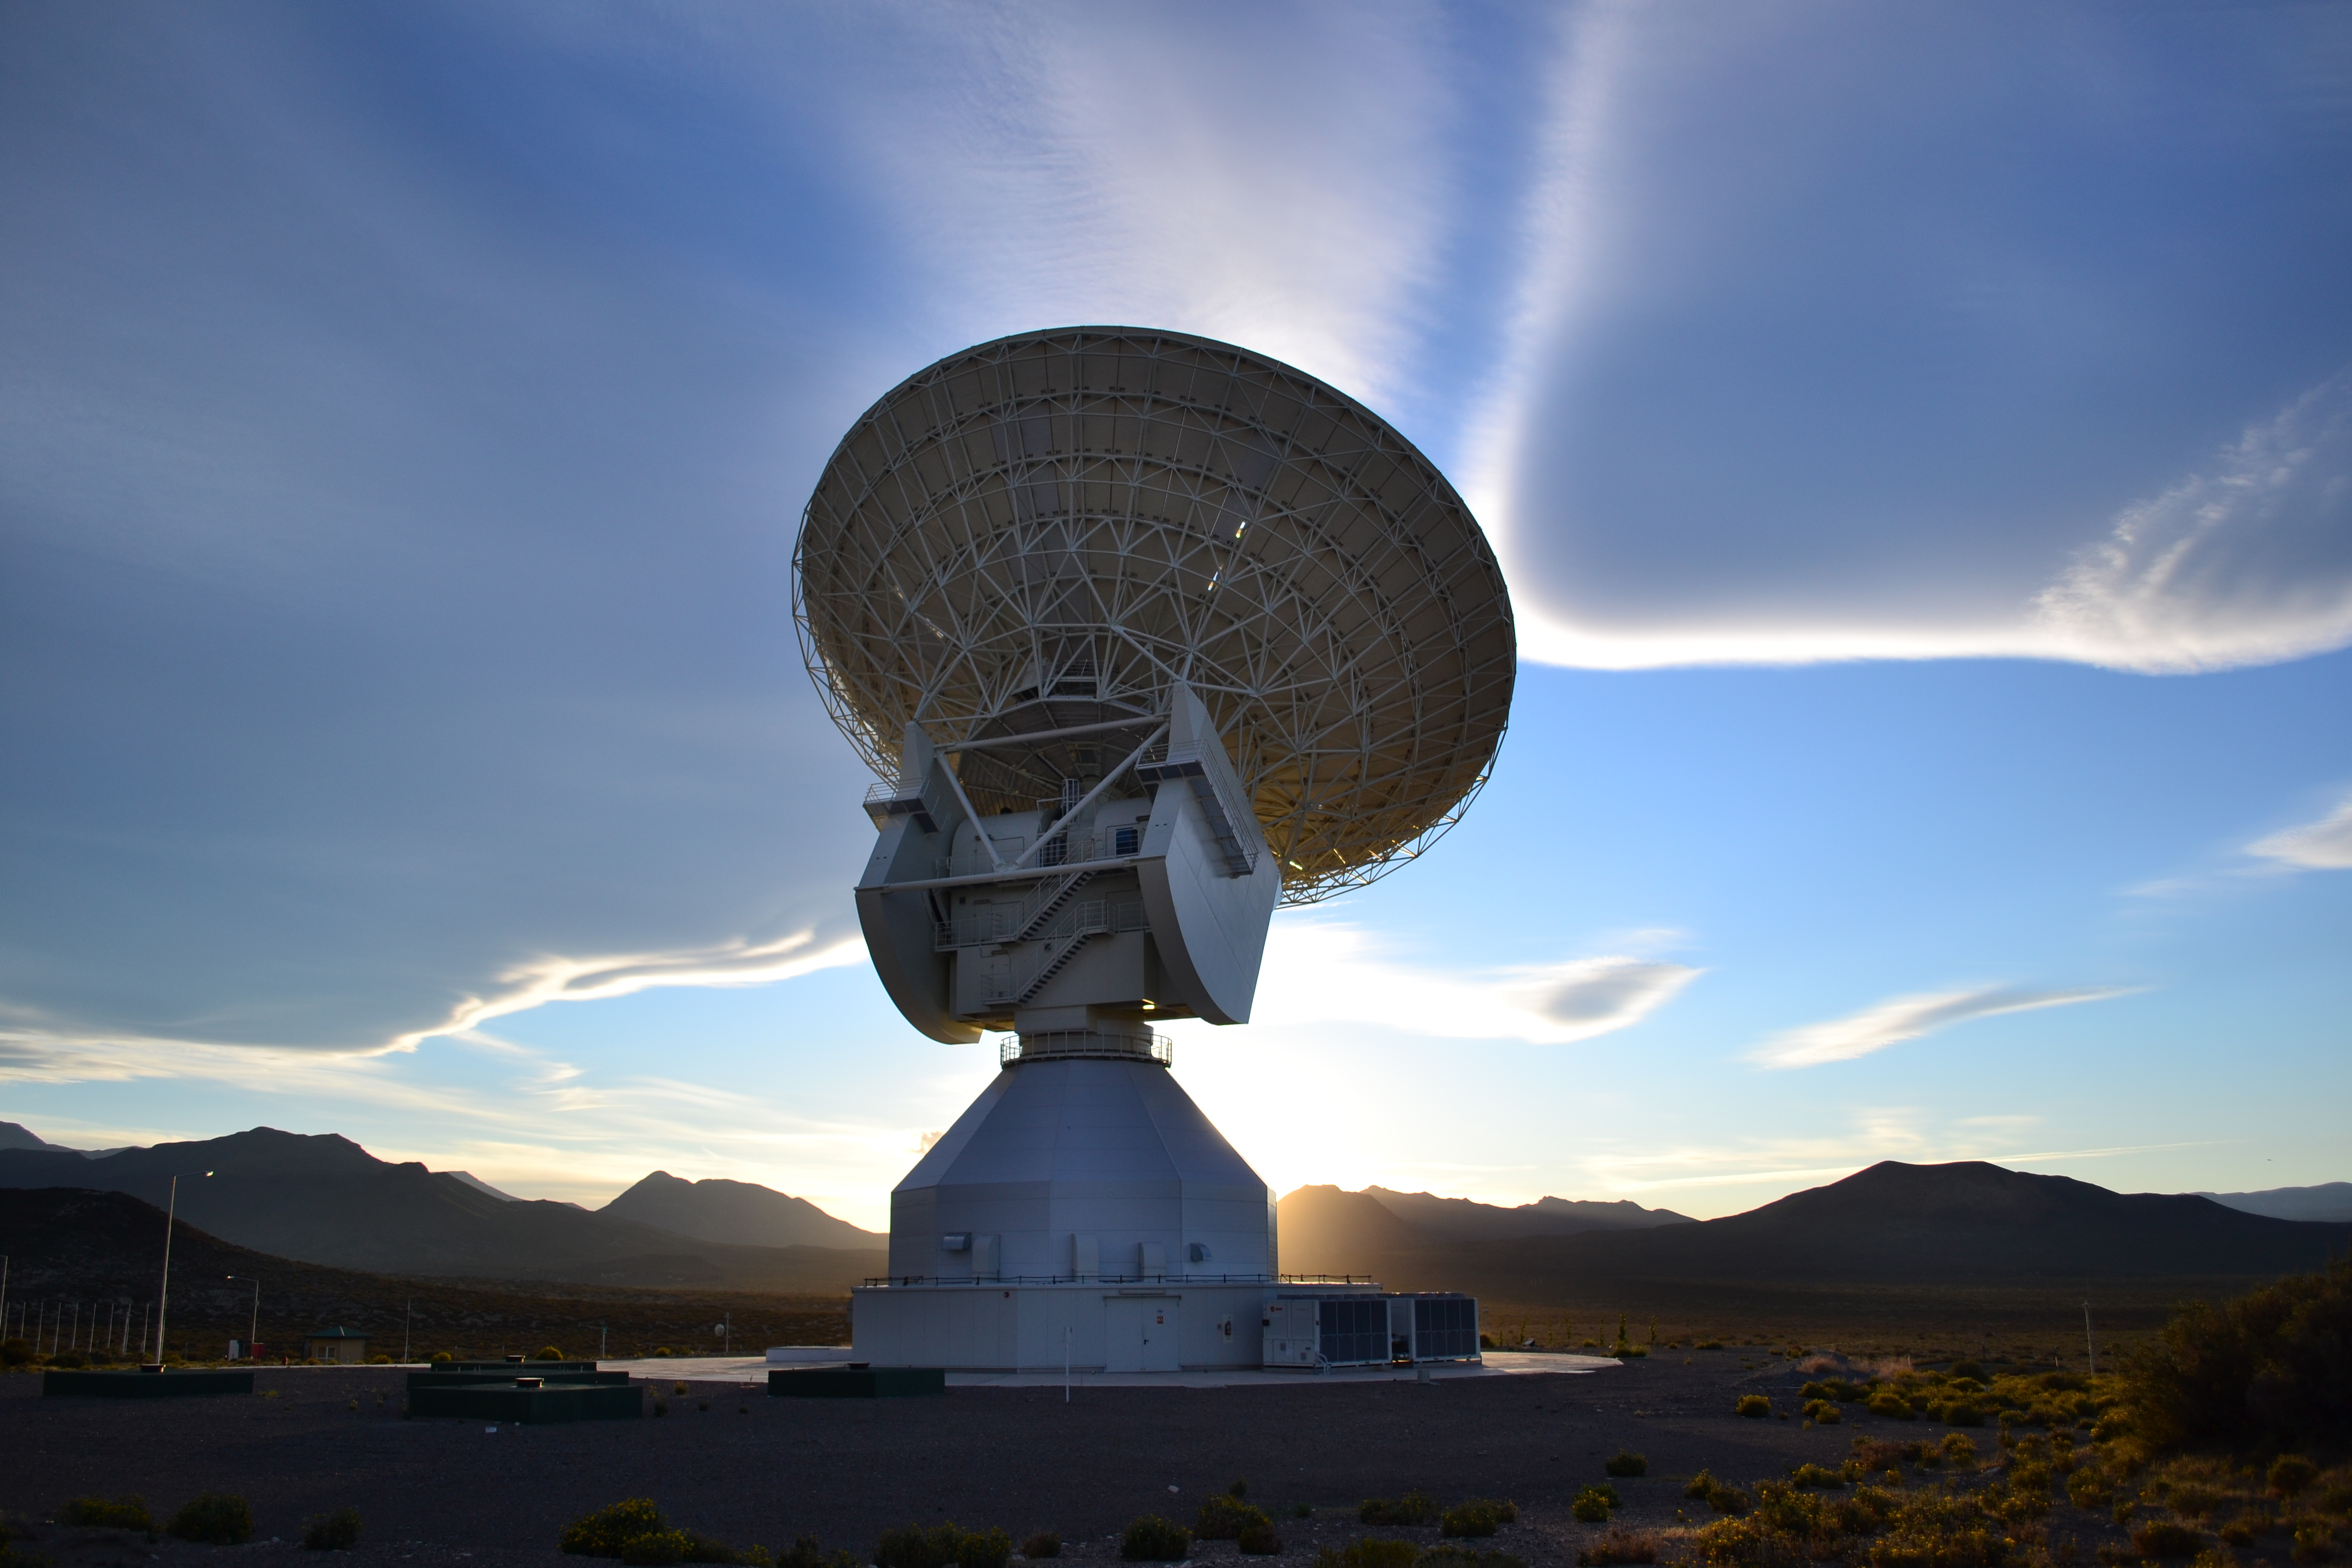 4. Deep Space Tracking Station, Cebreros, Spain